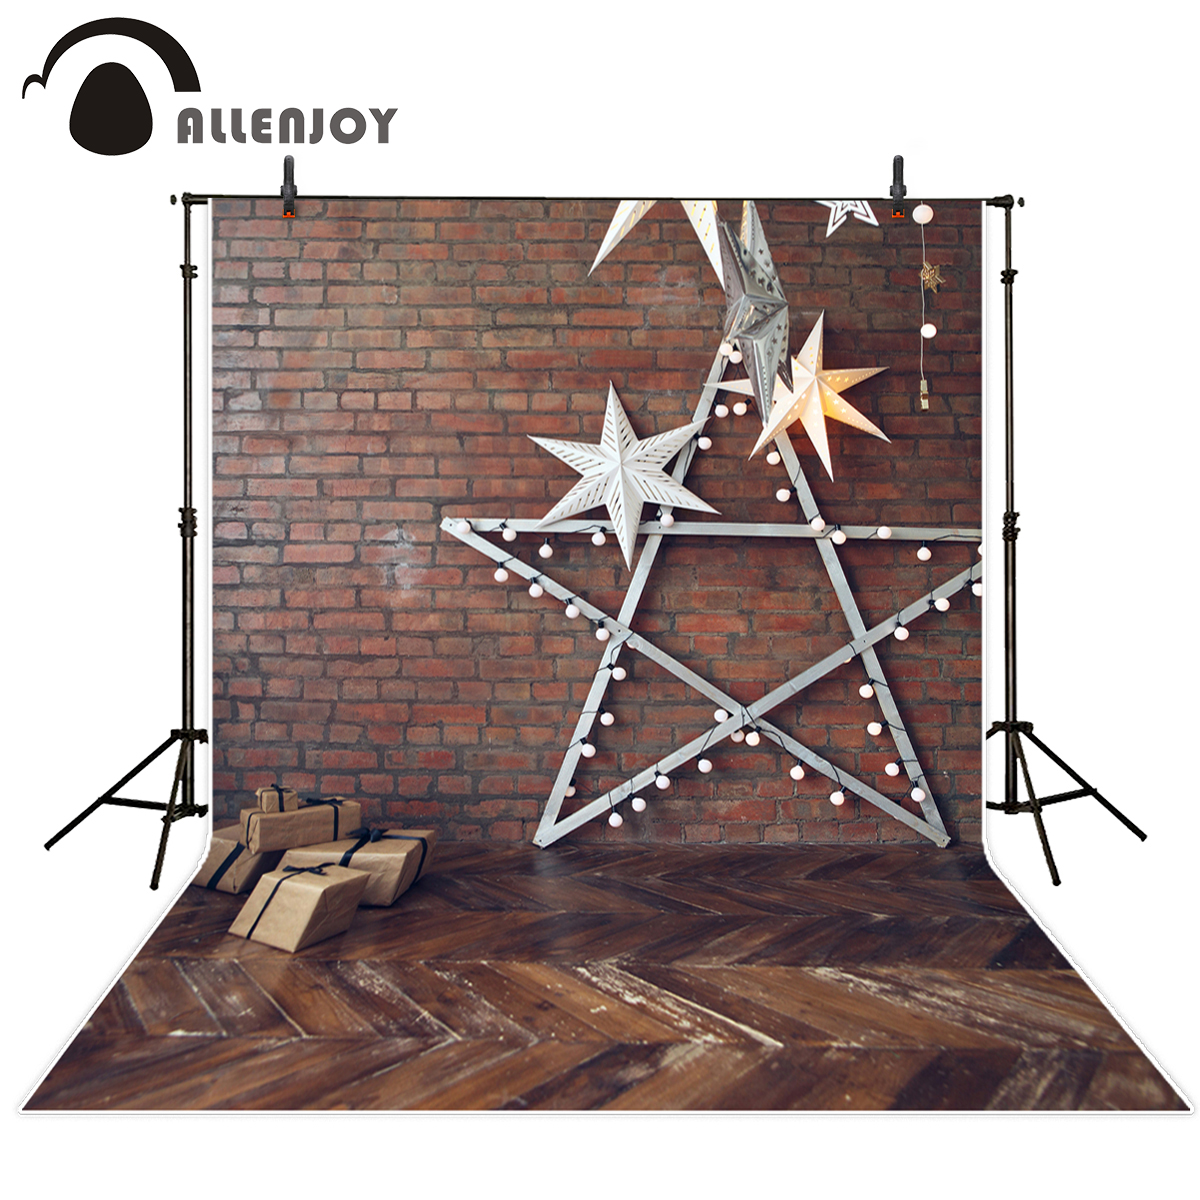 Allenjoy photography backdrops brick wall snowflake star wood floor decor backgrounds for photo studio photo background vinyl kate wood photography photography white brick wall backdrops gray wood floor baby backgrounds for photo shoot print cm 5674